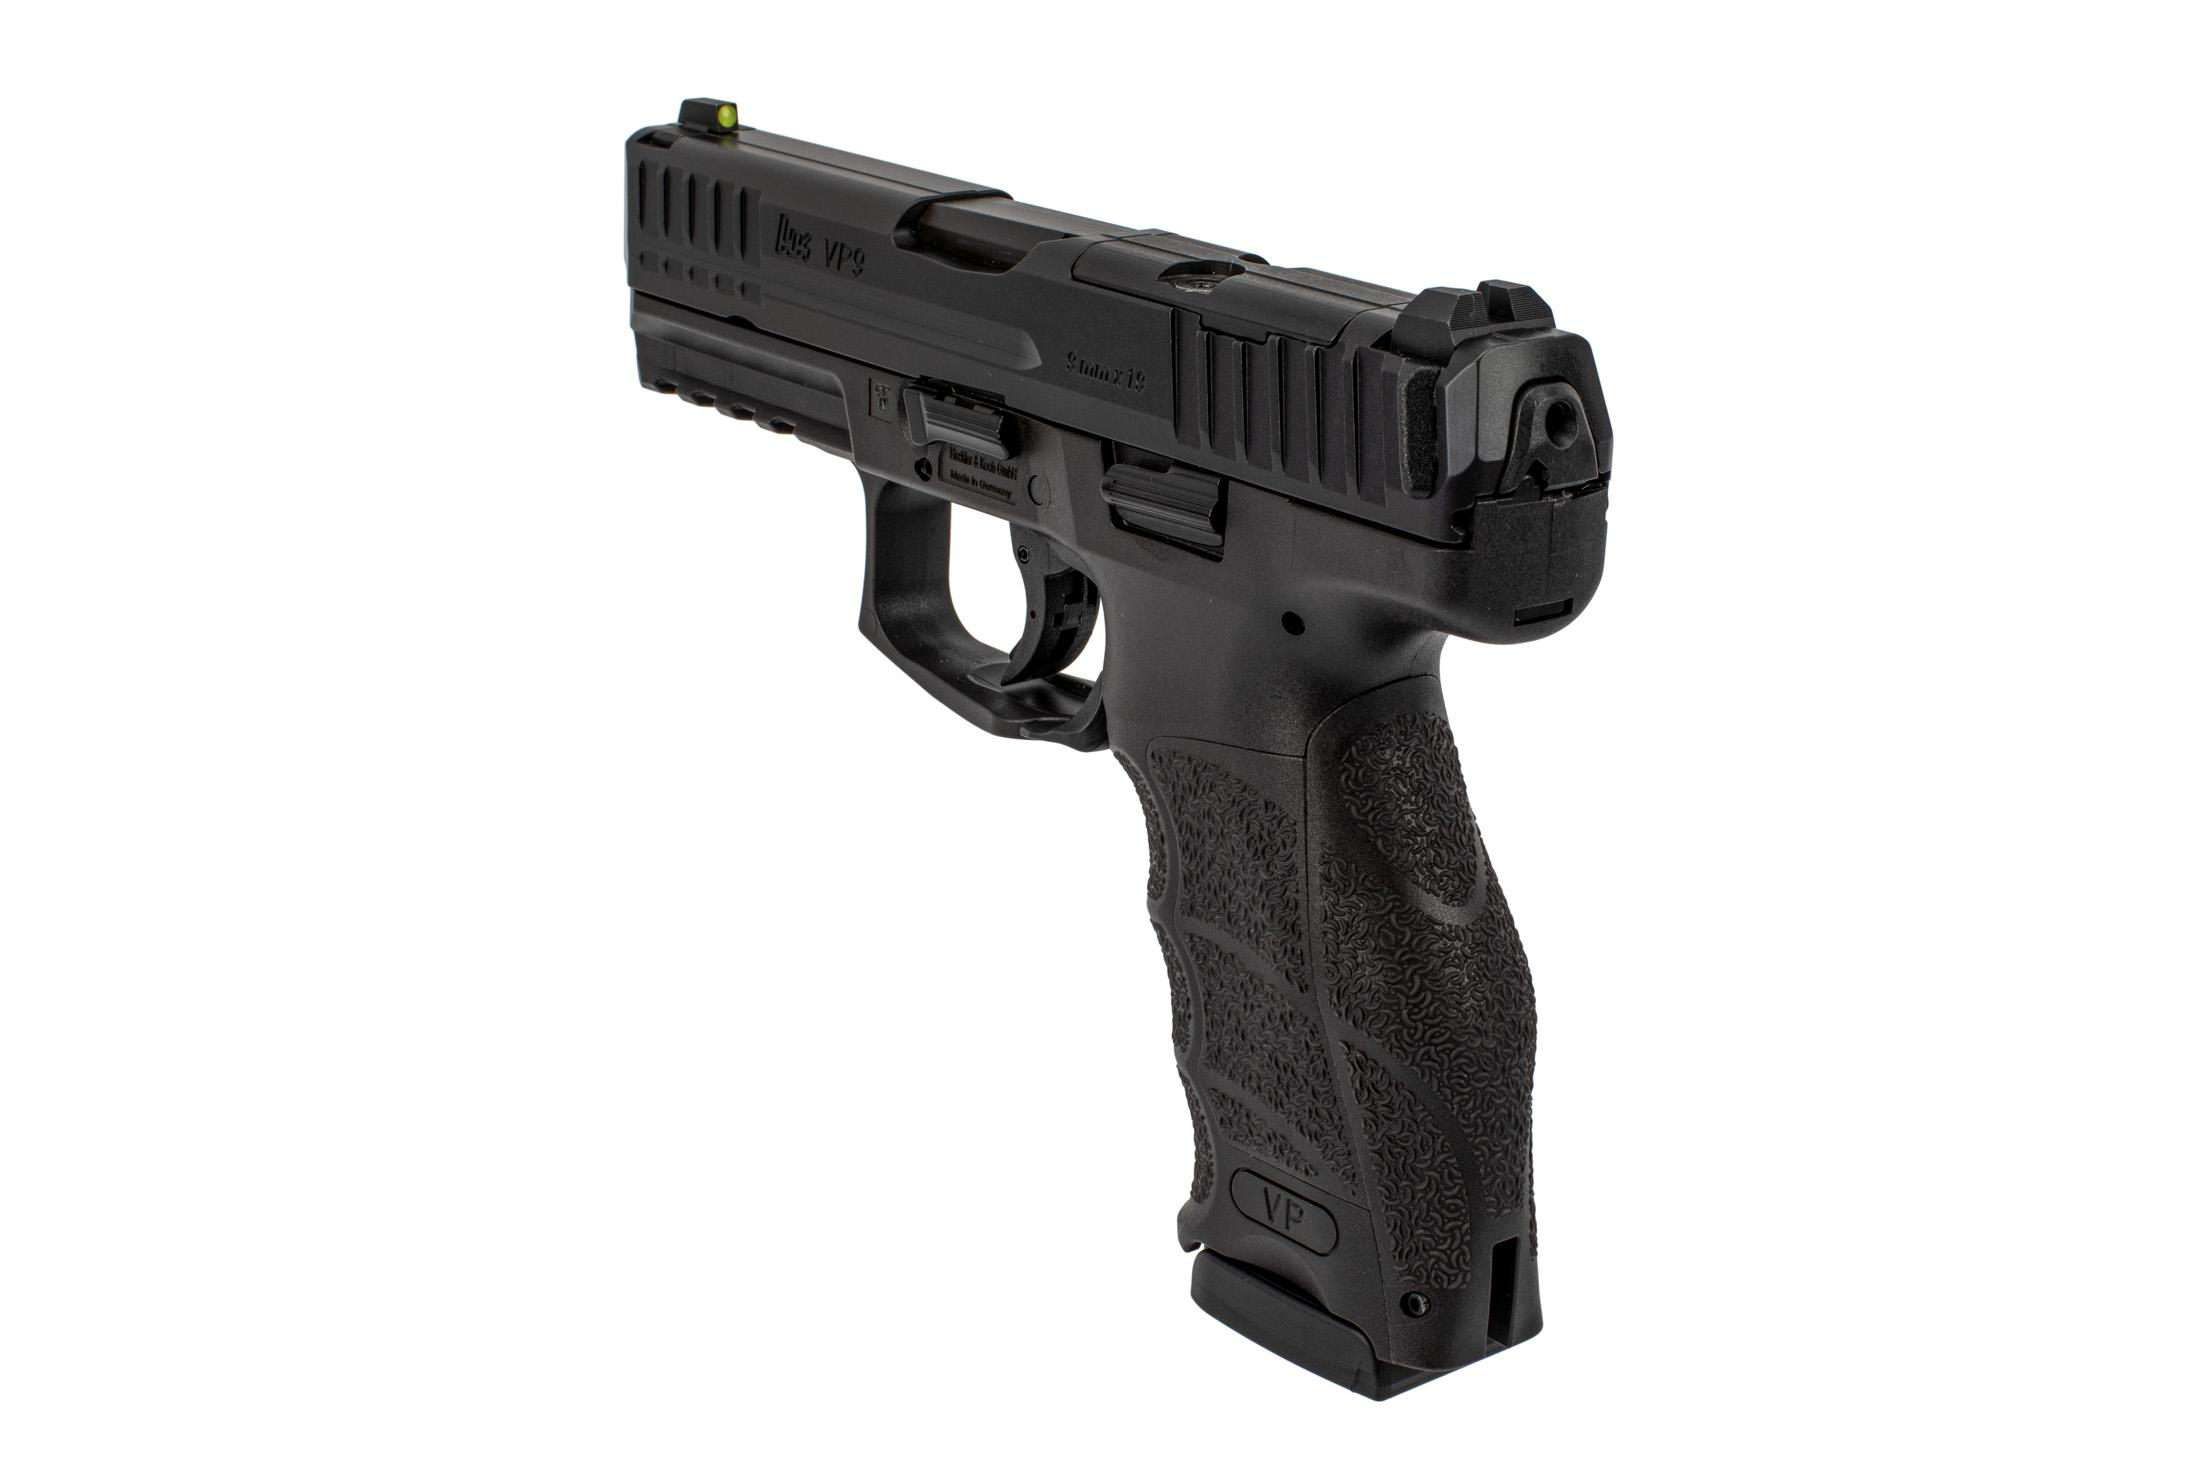 H&K VP9 optics ready 9mm handgun comes with interchangeable back straps